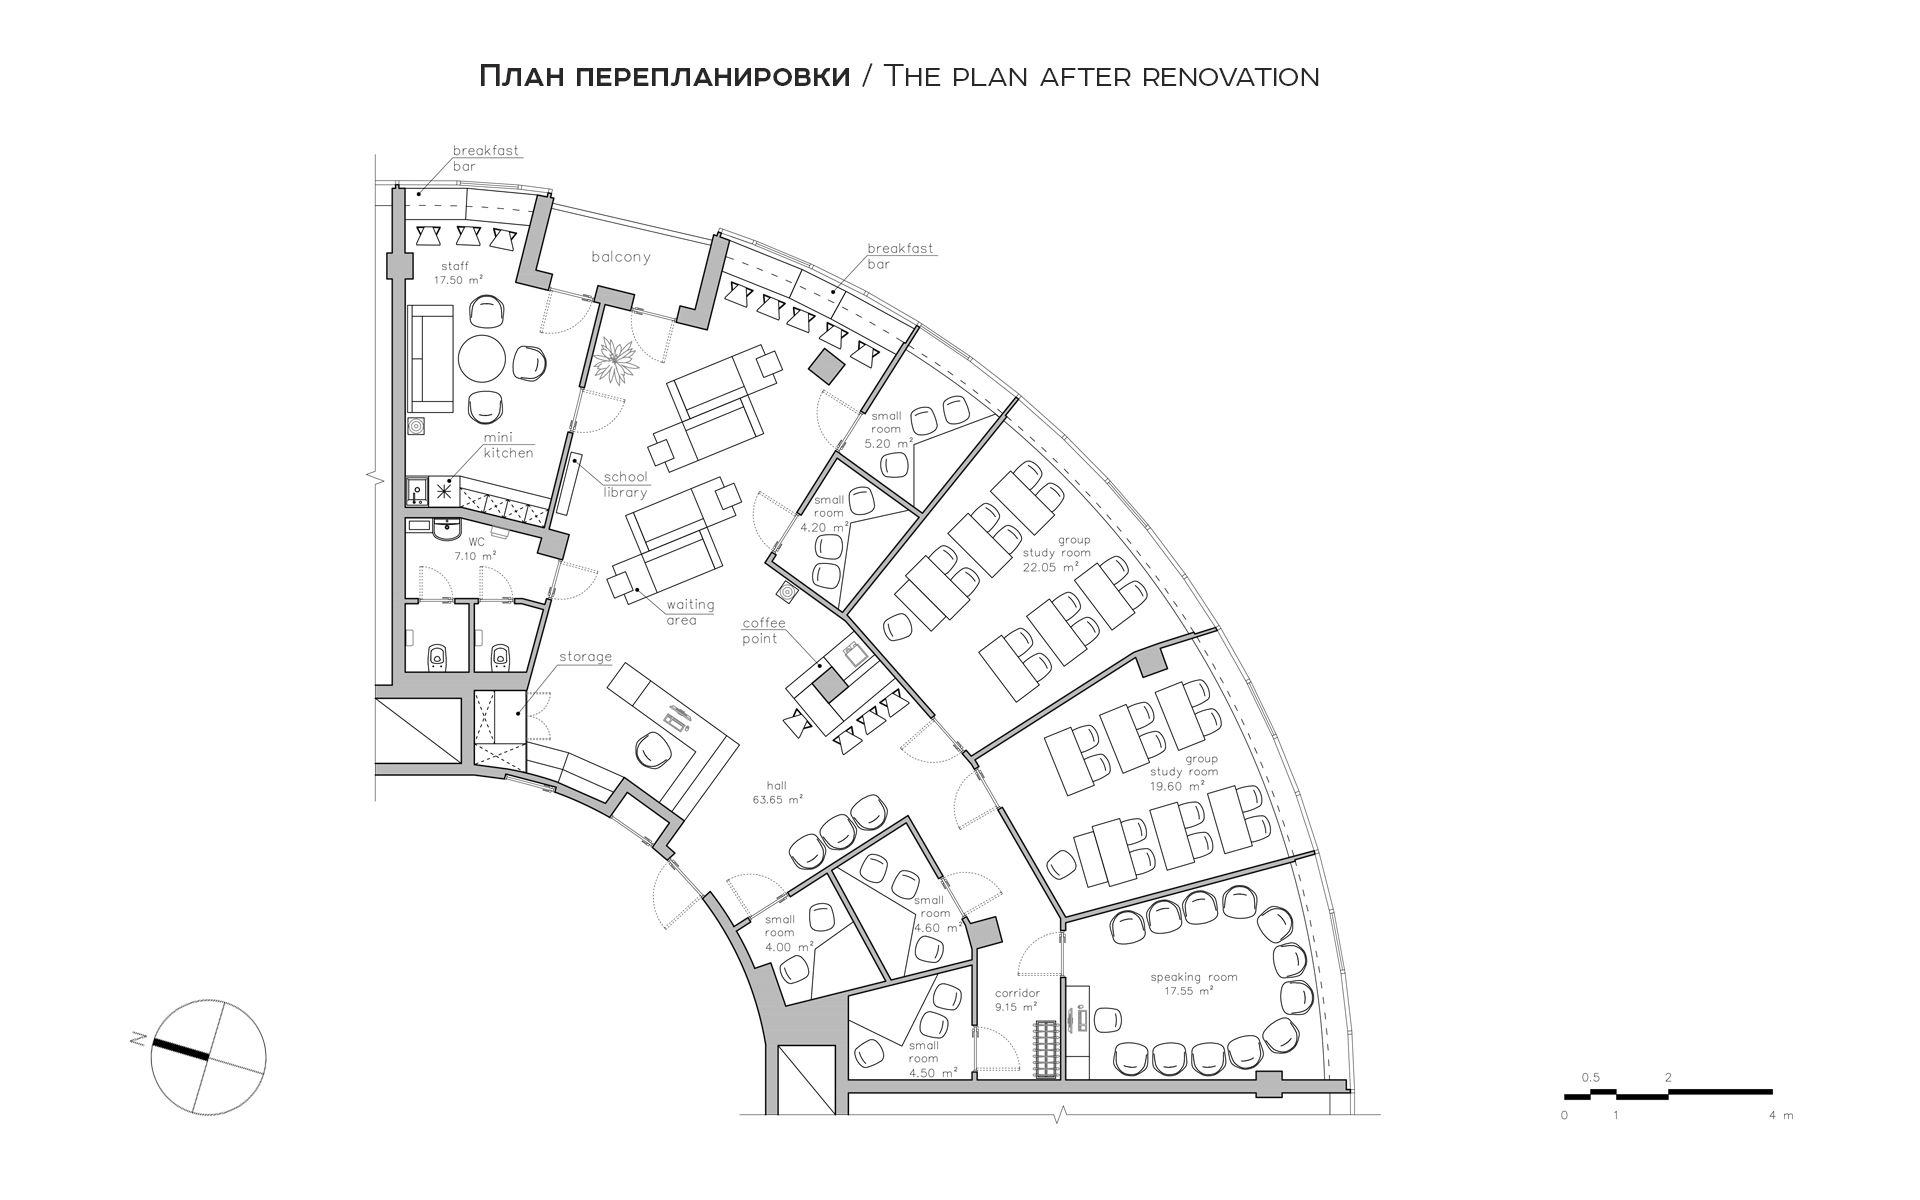 Friends English Club Interior Design For The English Language School By The Goort Dnipro Ukraine 2016 Office D Language School Language Centers English